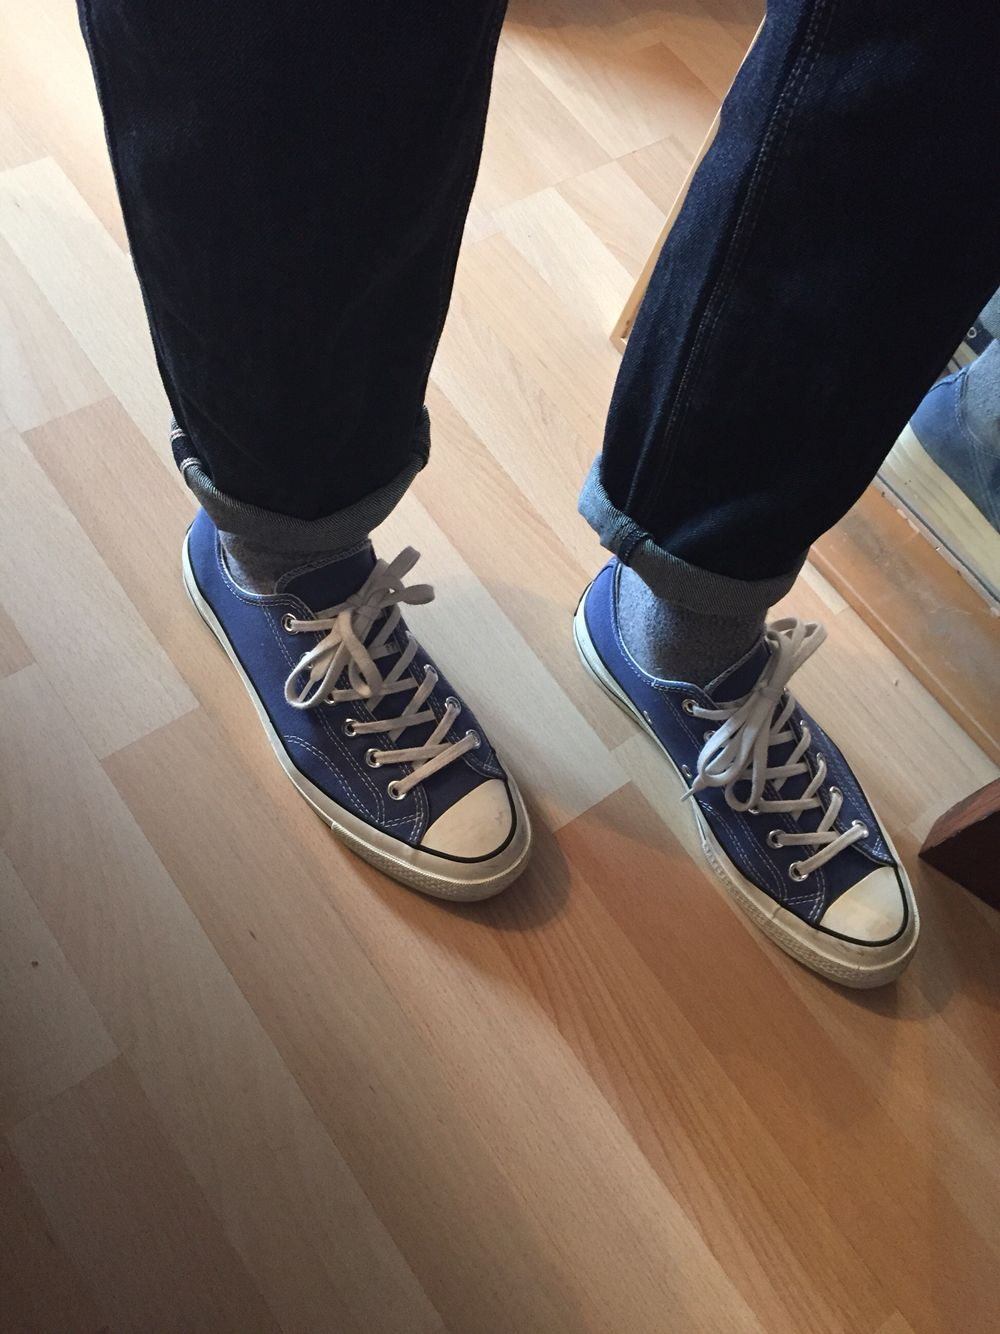 becedfe40c2f Japanese Selvedge denim with Converse All Star 70 s Ox